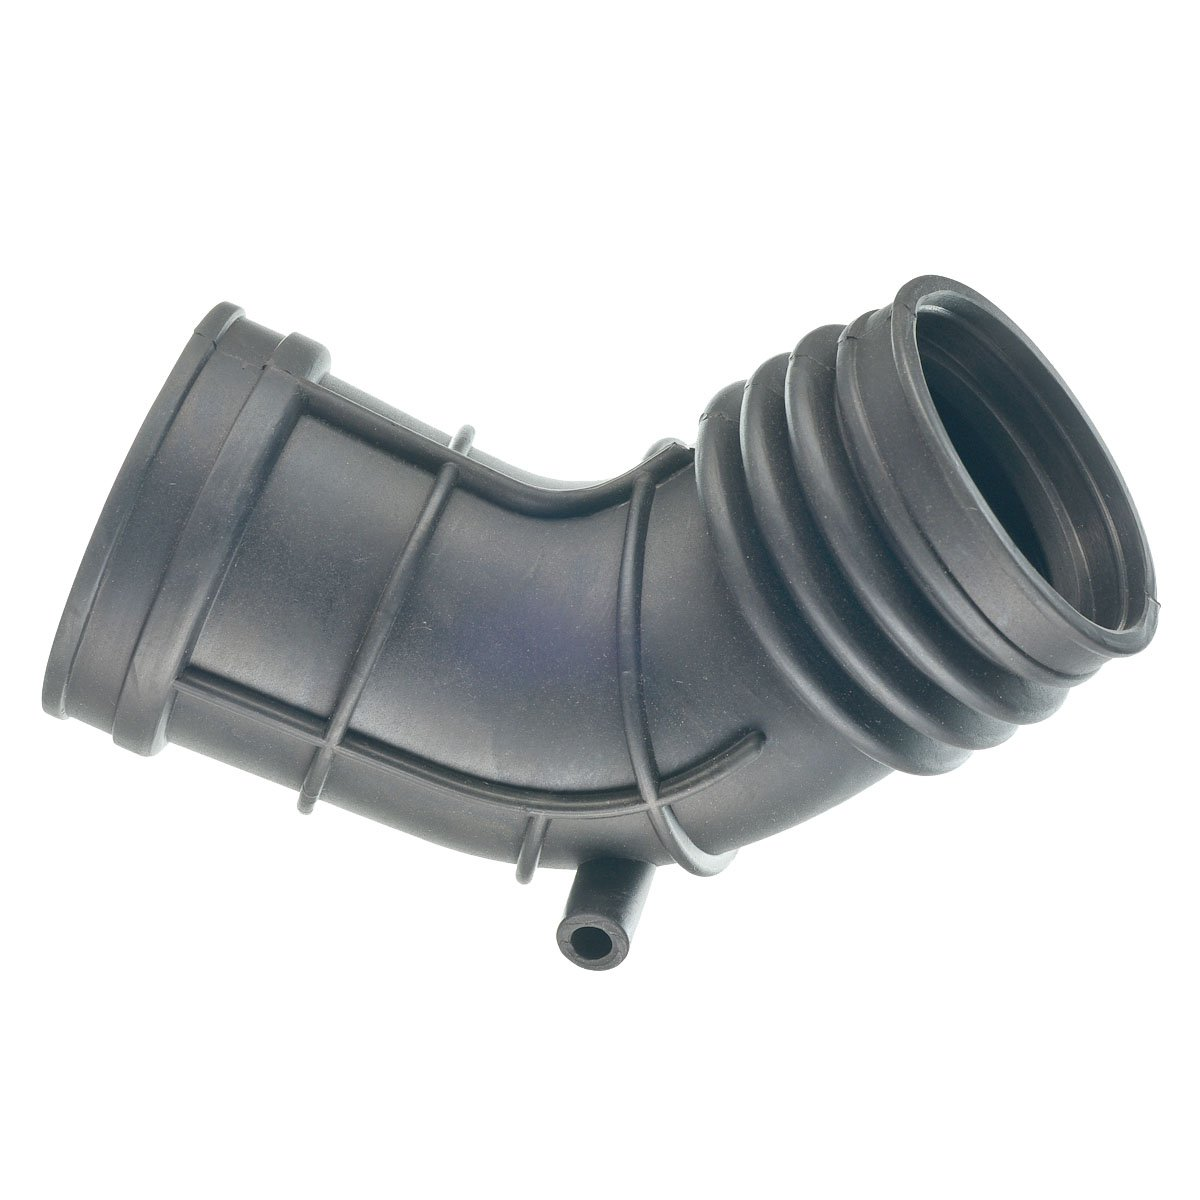 A-Premium Air Flow Meter Boot Intake Hose Tube to Throttle Body for BMW E46 323i 323Ci 325i 325Ci 328i 1999-2006 Z3